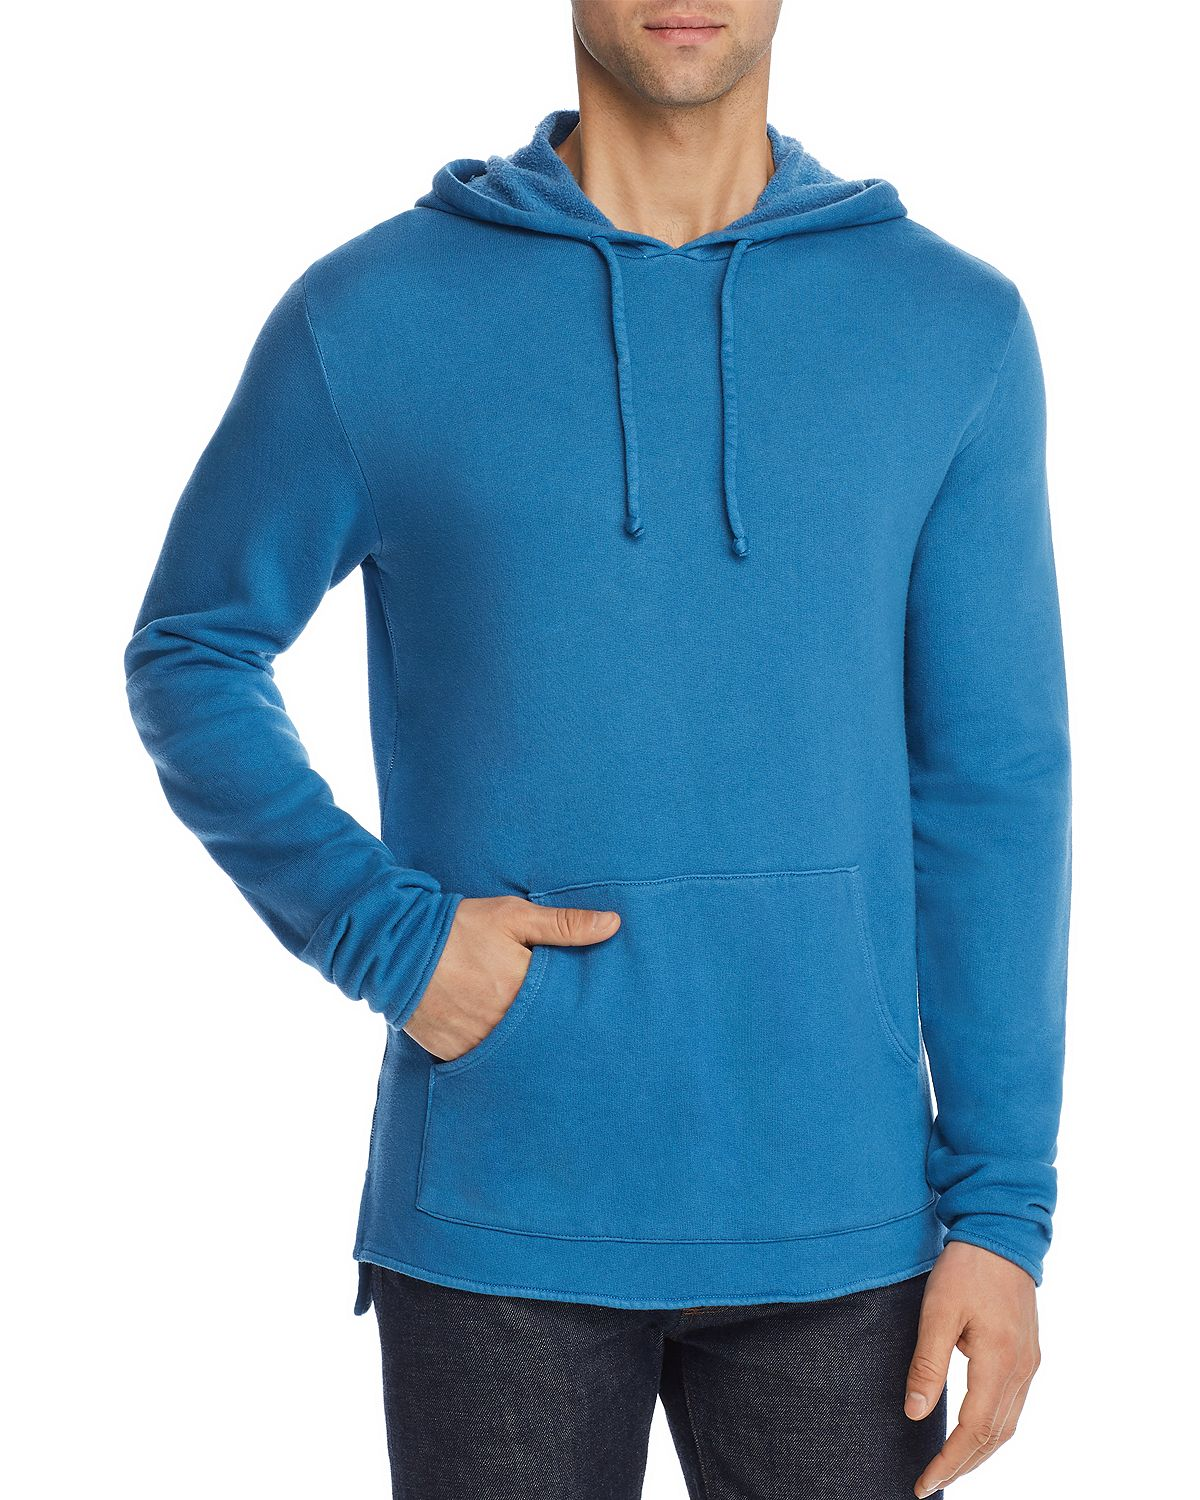 M Singer Hooded Sweatshirt Azure